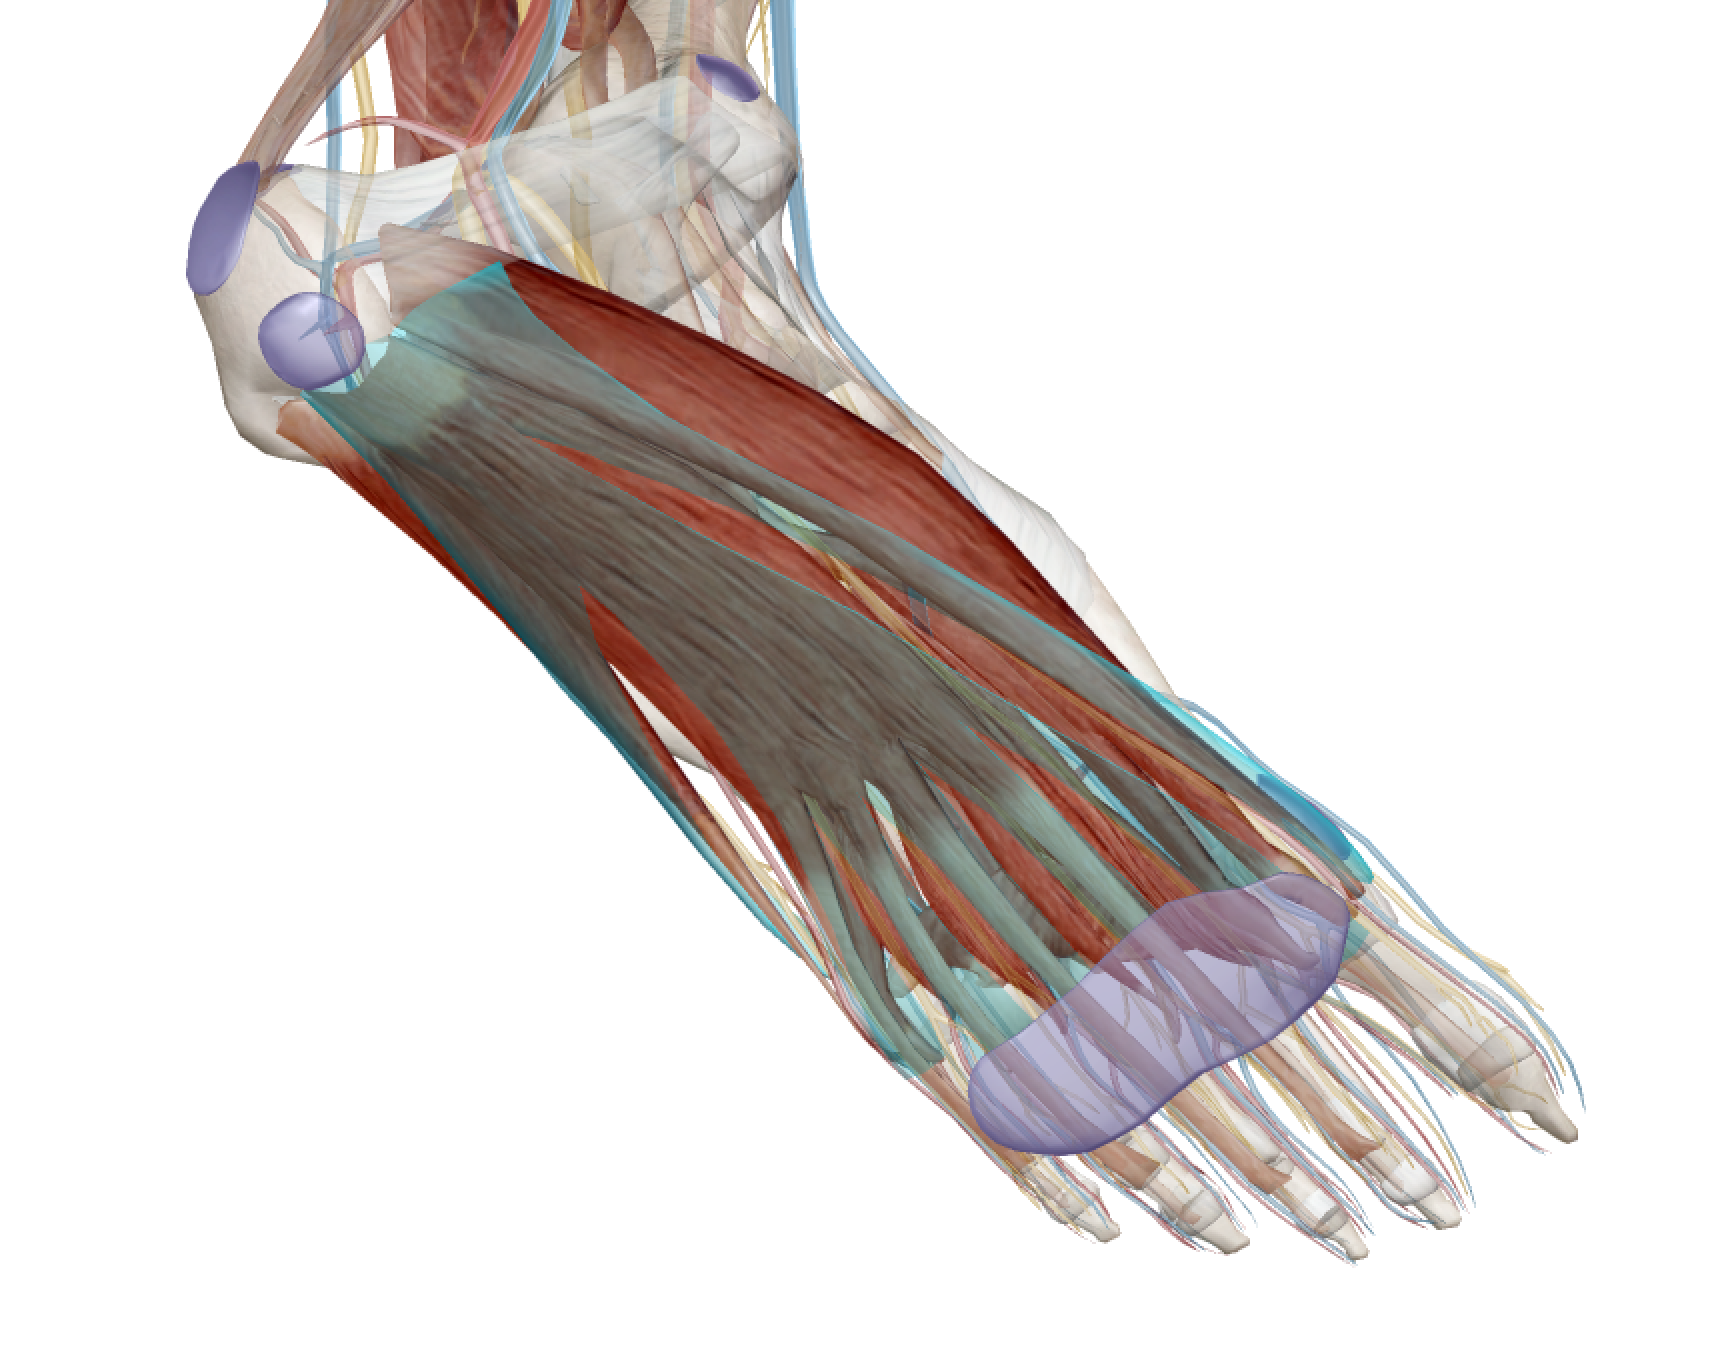 Figure 1: The plantar fascia, highlighted in green.